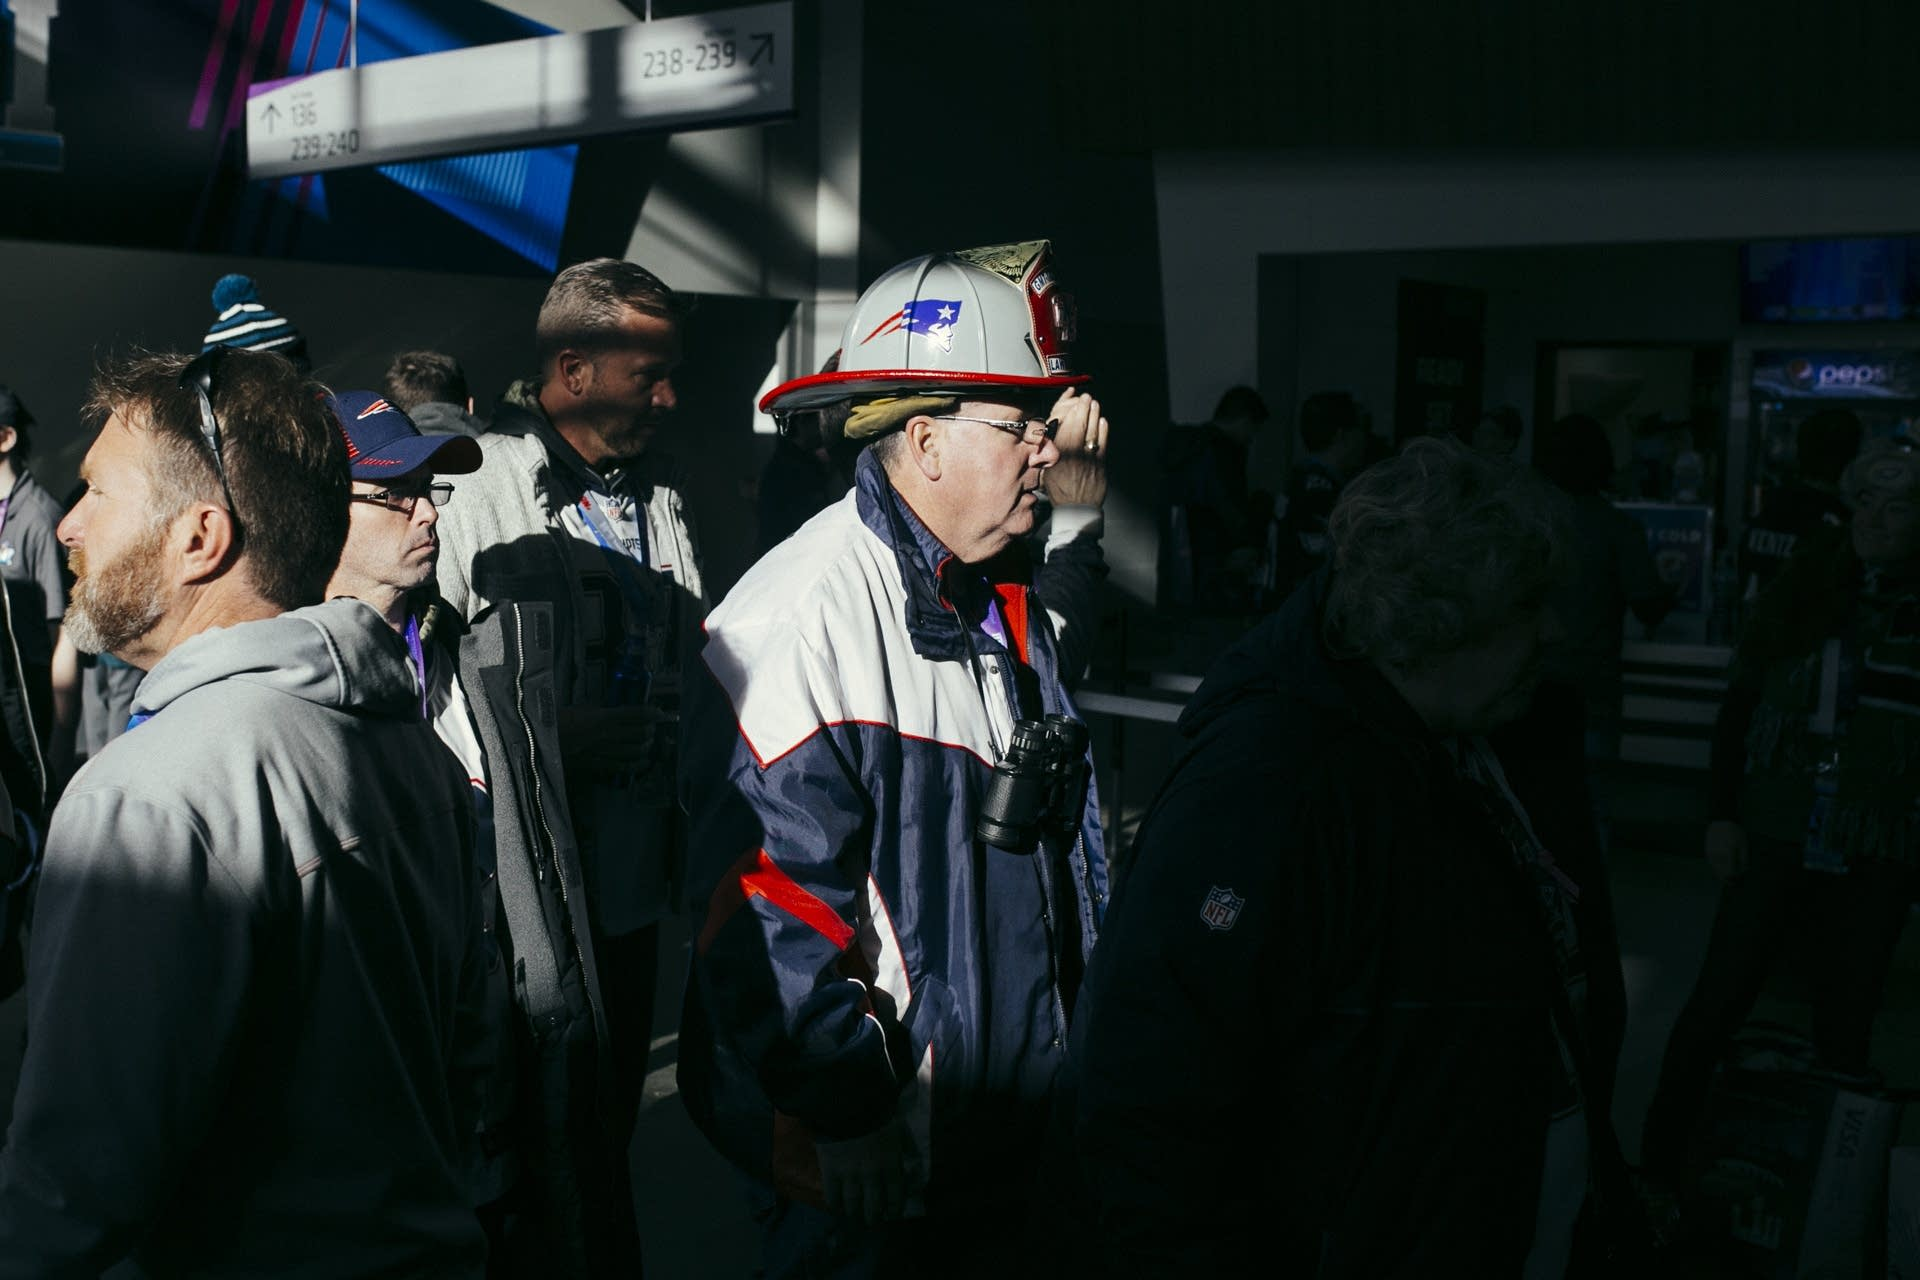 Firefighter Pat Driscoll of Lawrence, Mass. walks through the concourse.